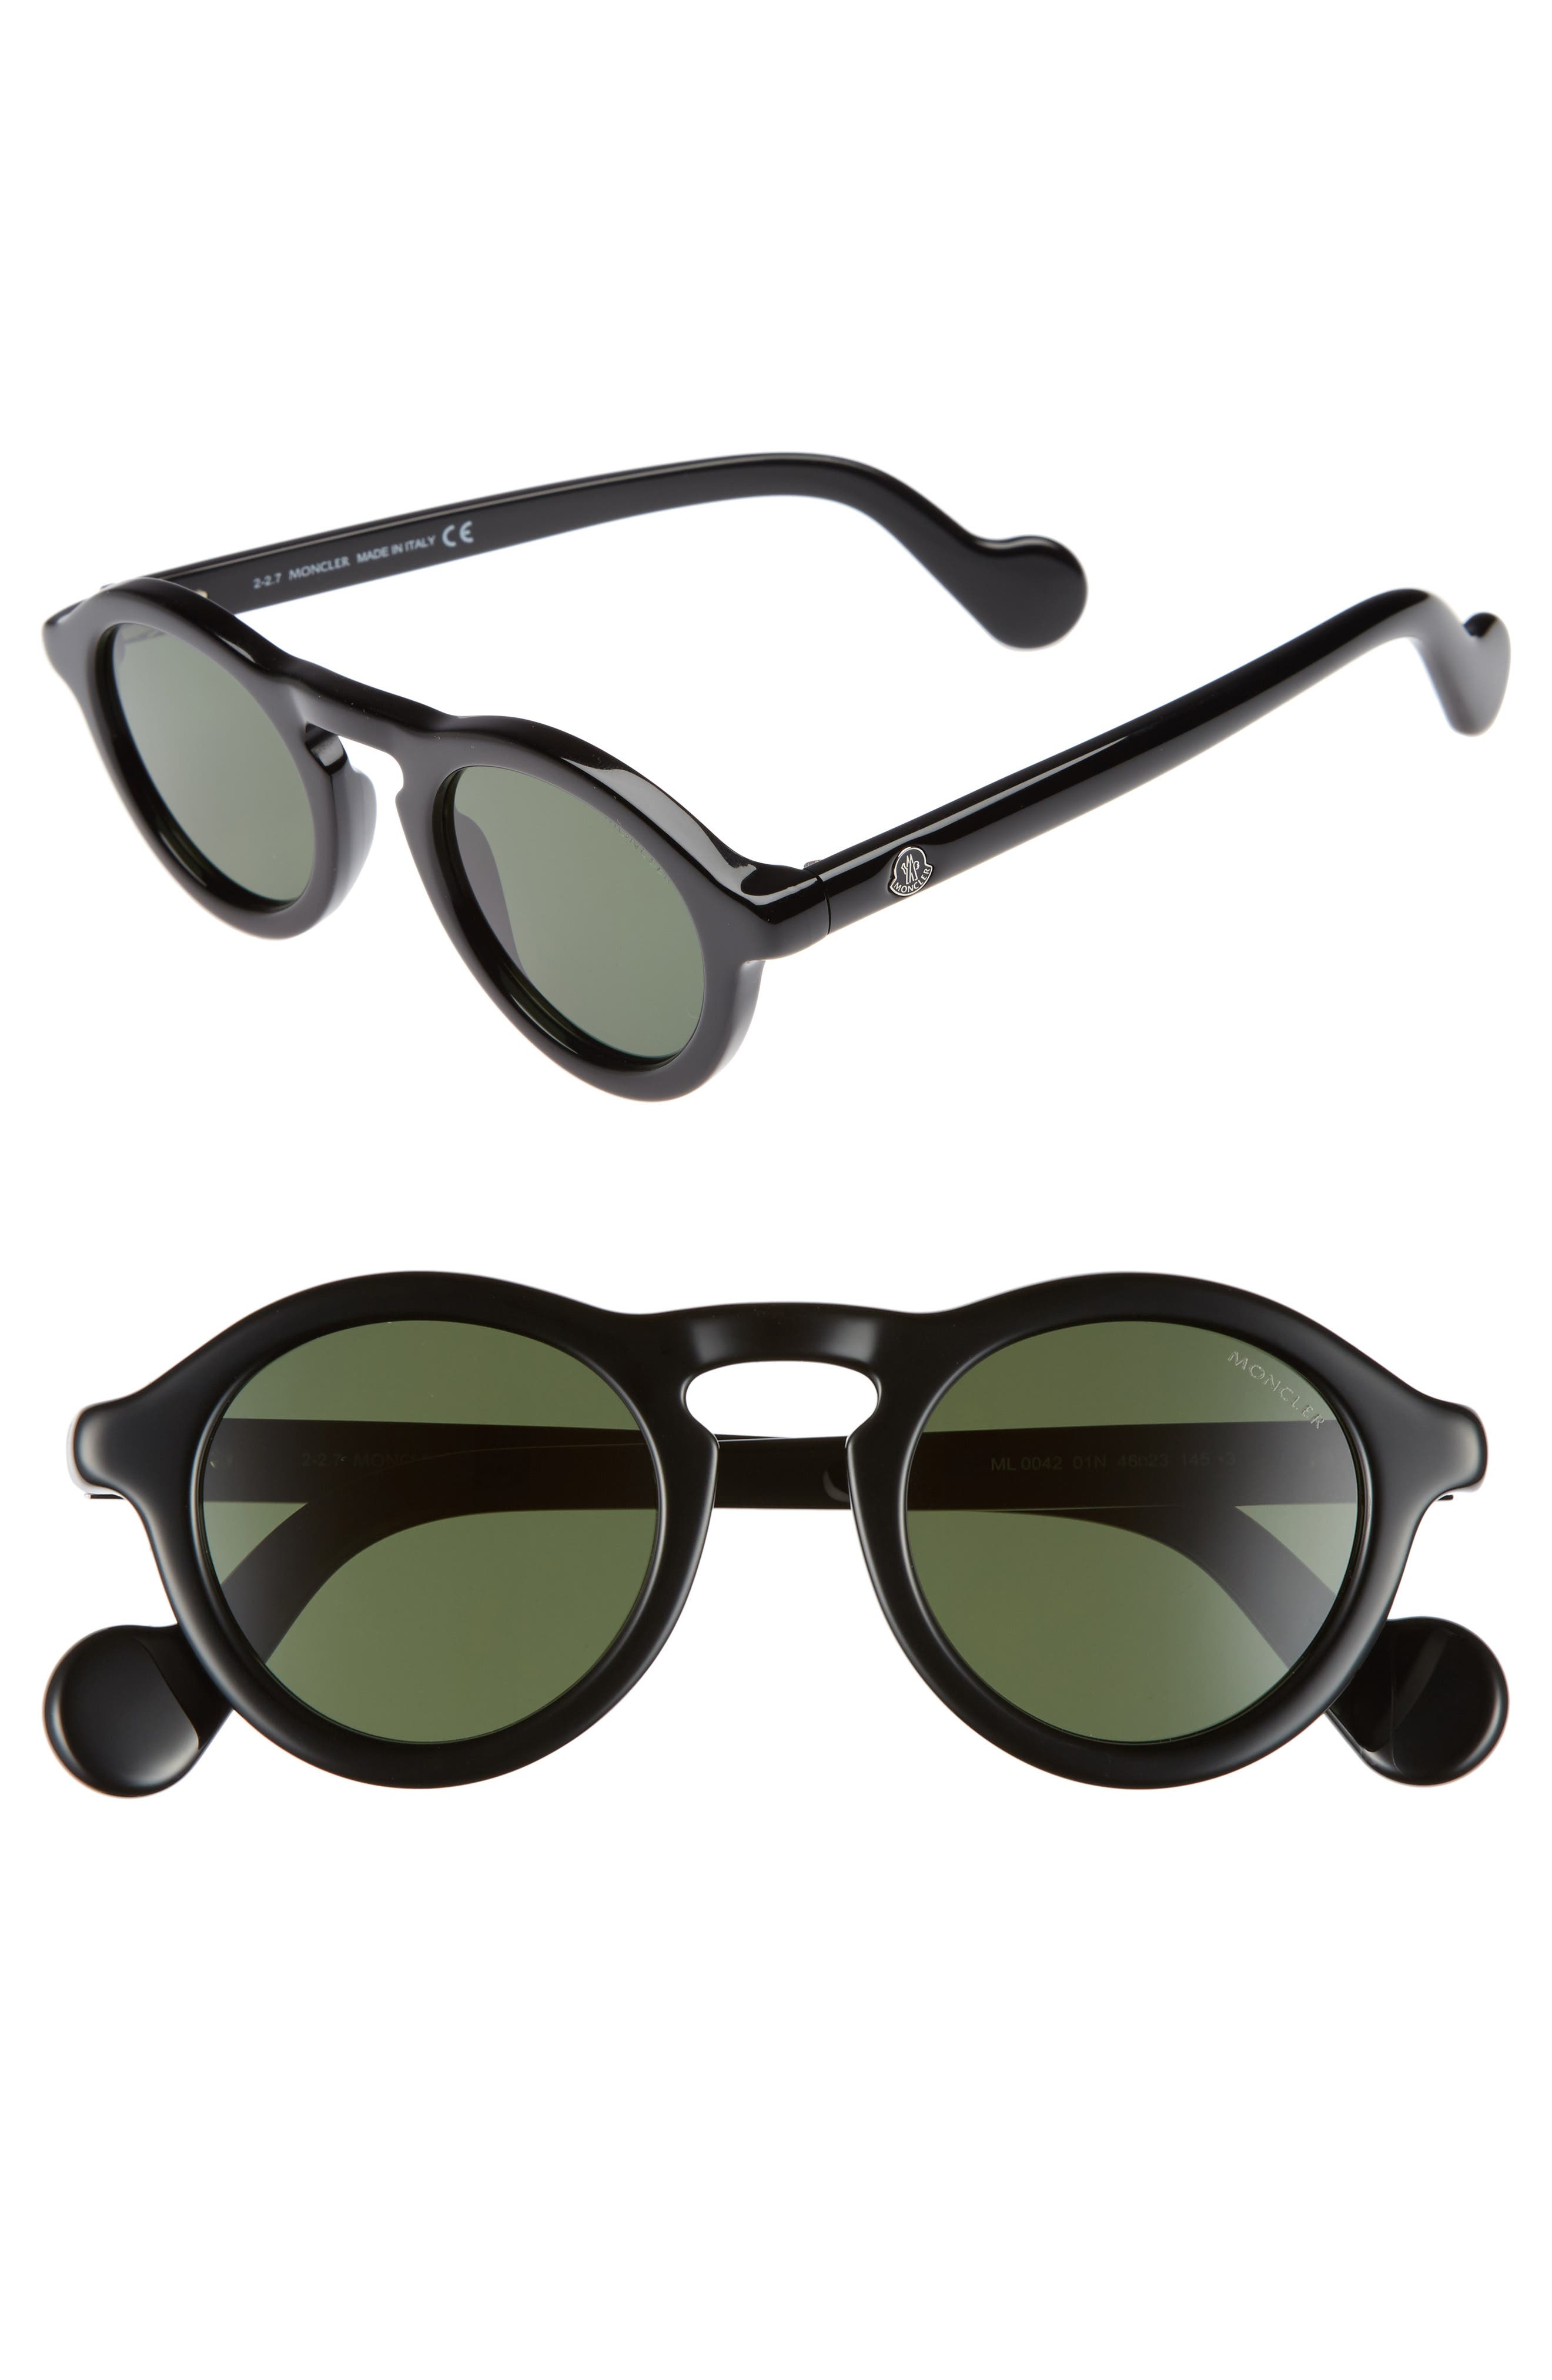 46mm Round Sunglasses,                             Main thumbnail 1, color,                             Shiny Black/ Green